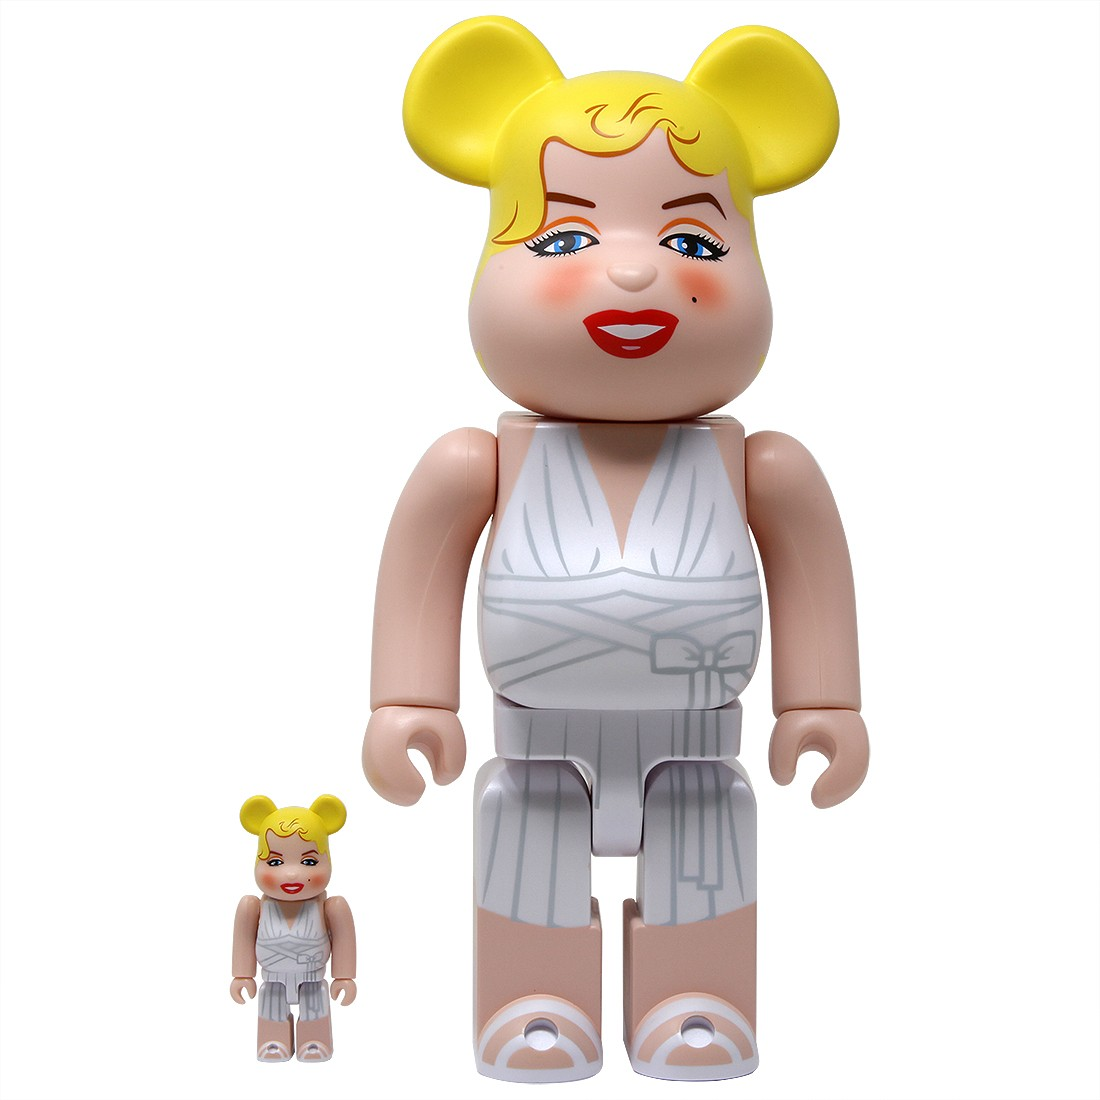 Medicom Marilyn Monroe 100% 400% Bearbrick Figure Set (white)